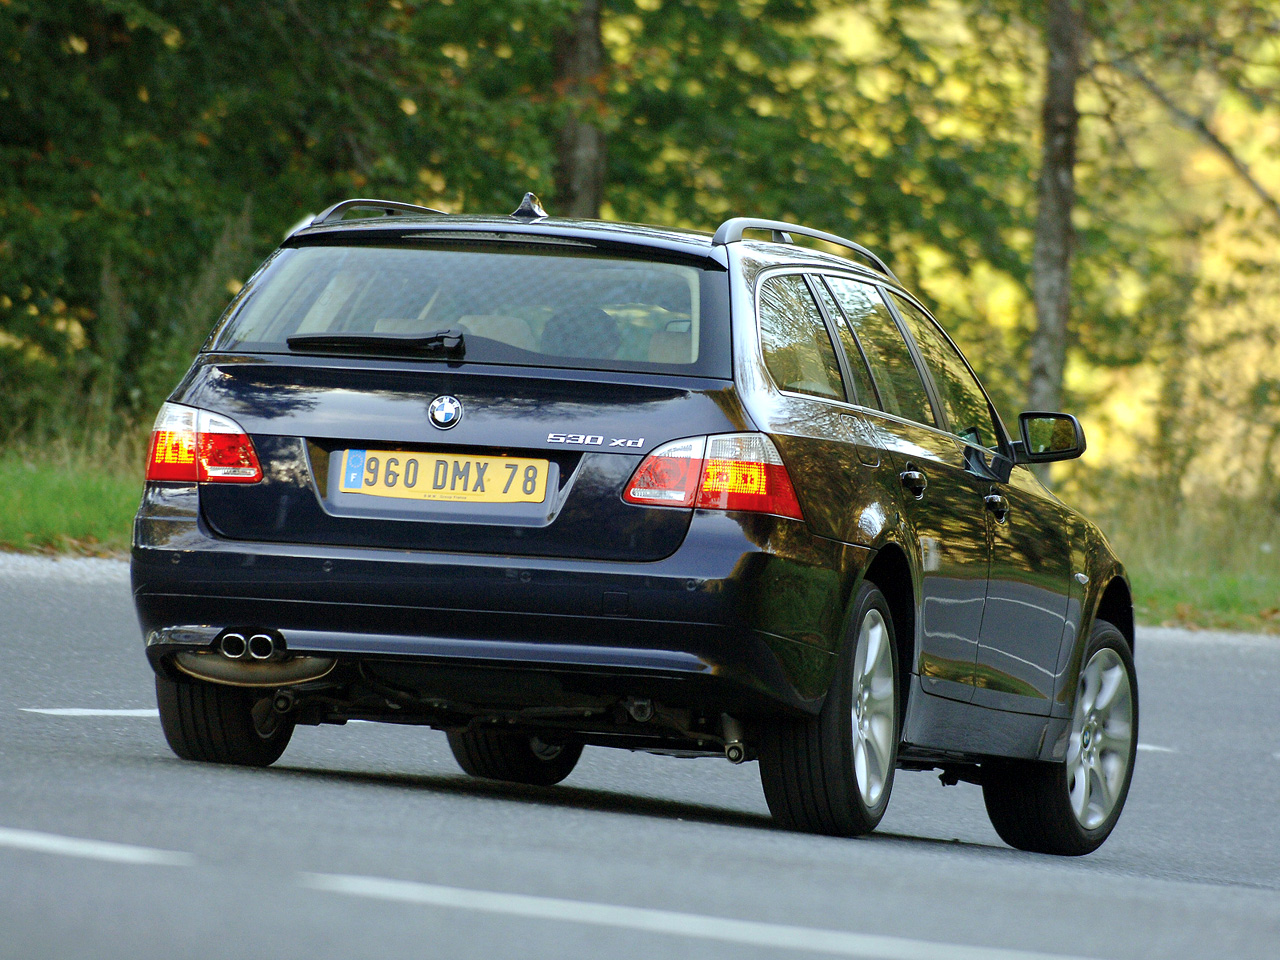 BMW 5 series 530xd 2003 photo - 1